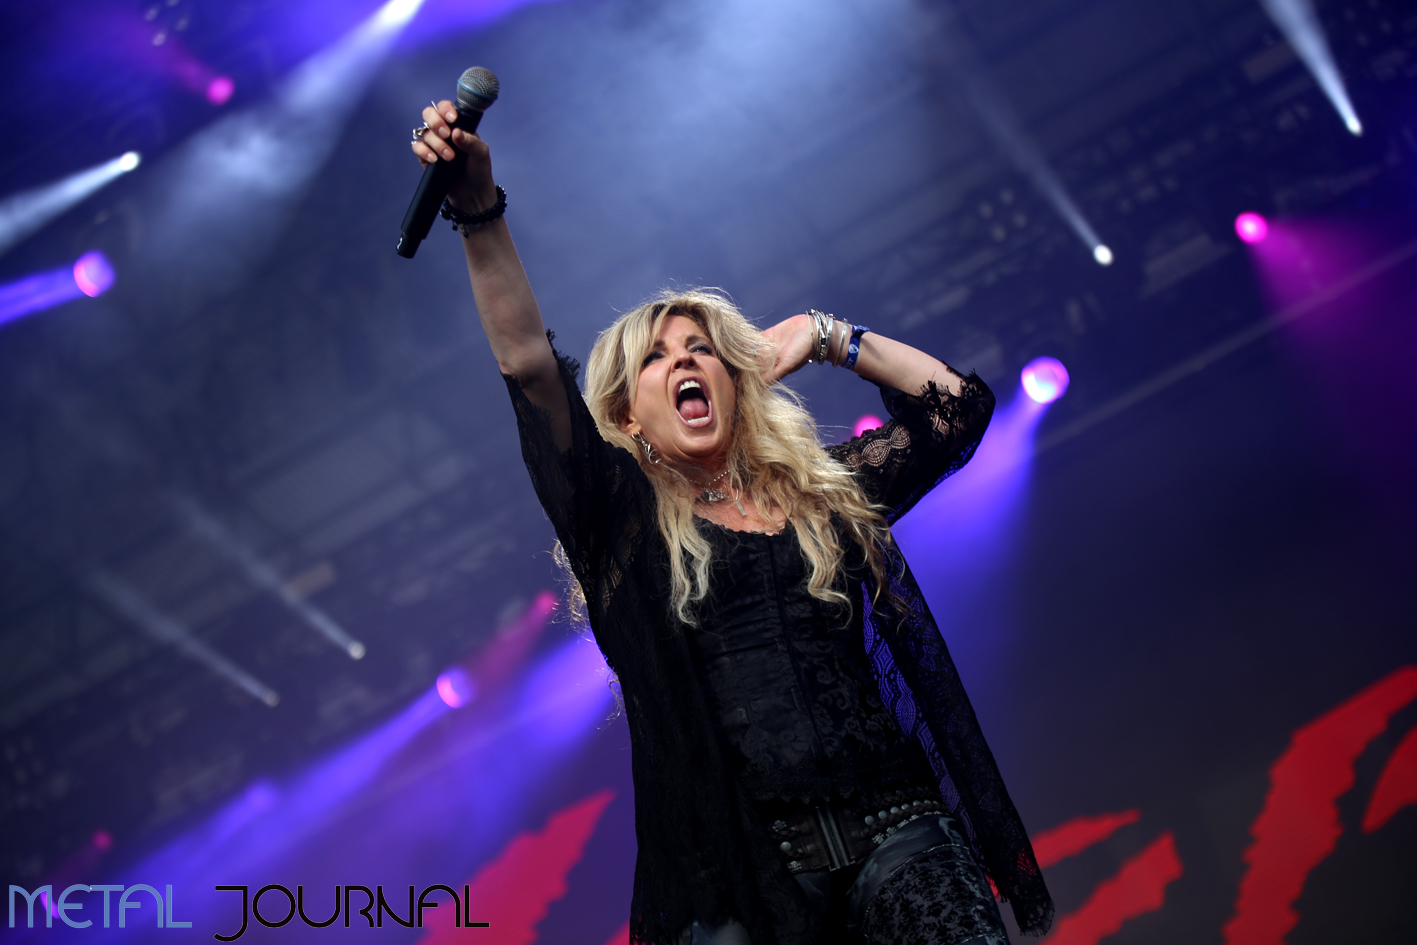 vixen rock fest 18 - metal journal pic 2